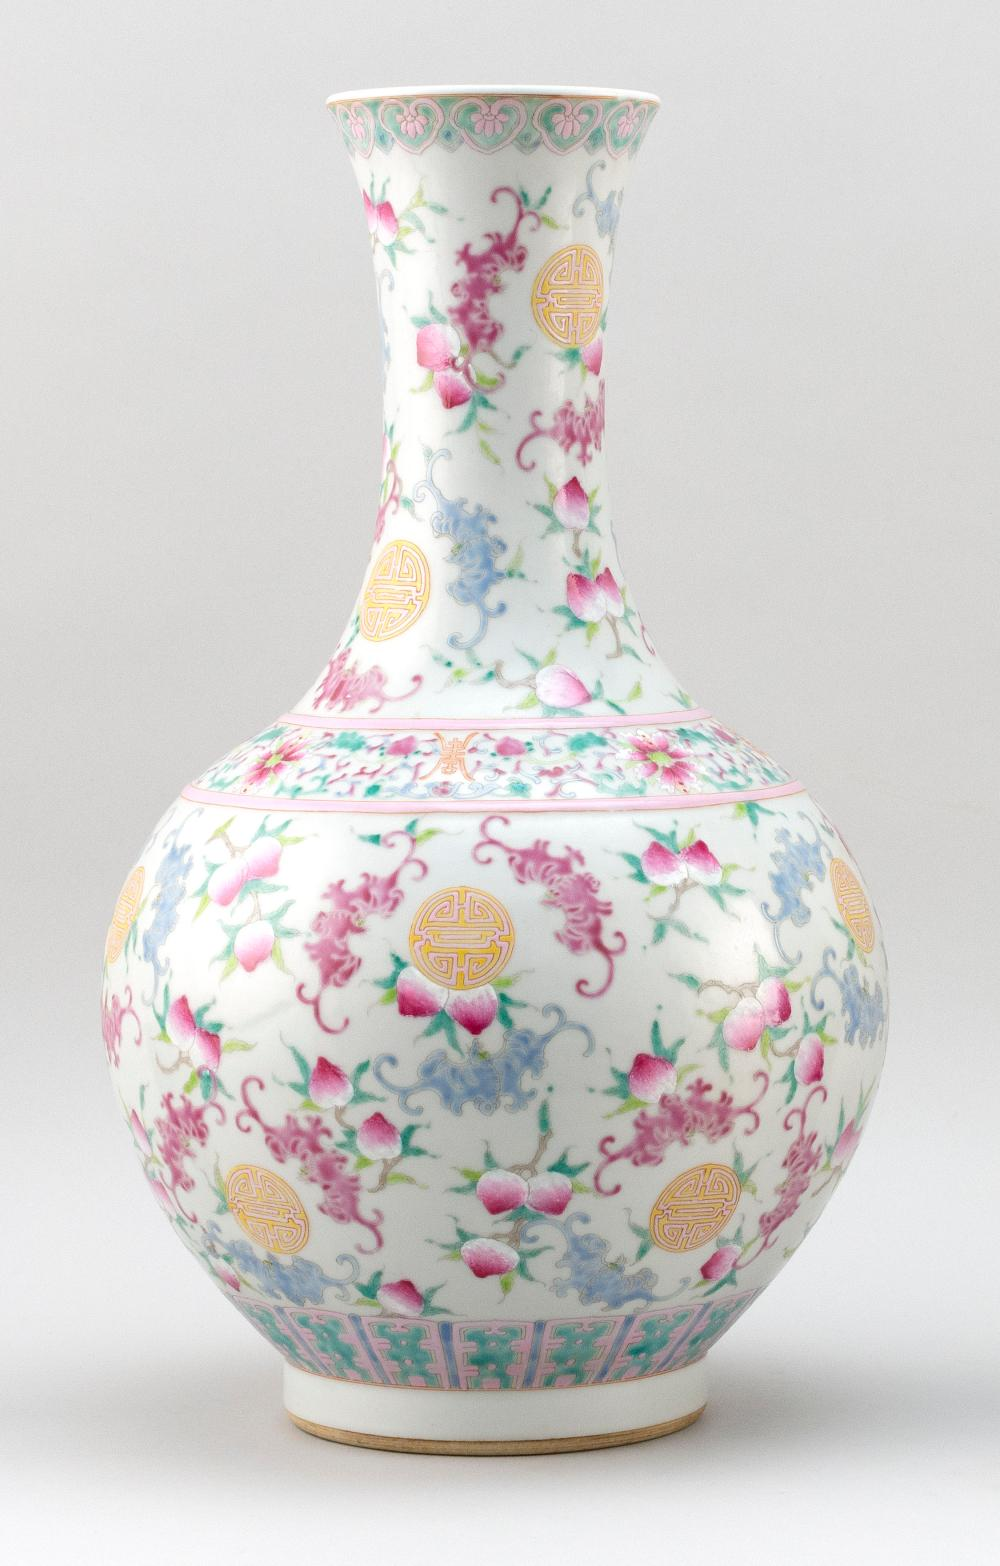 CHINESE POLYCHROME PORCELAIN VASE In mallet form, with bat and shou design. Six-character Jiaqing mark on base. Height 17.5